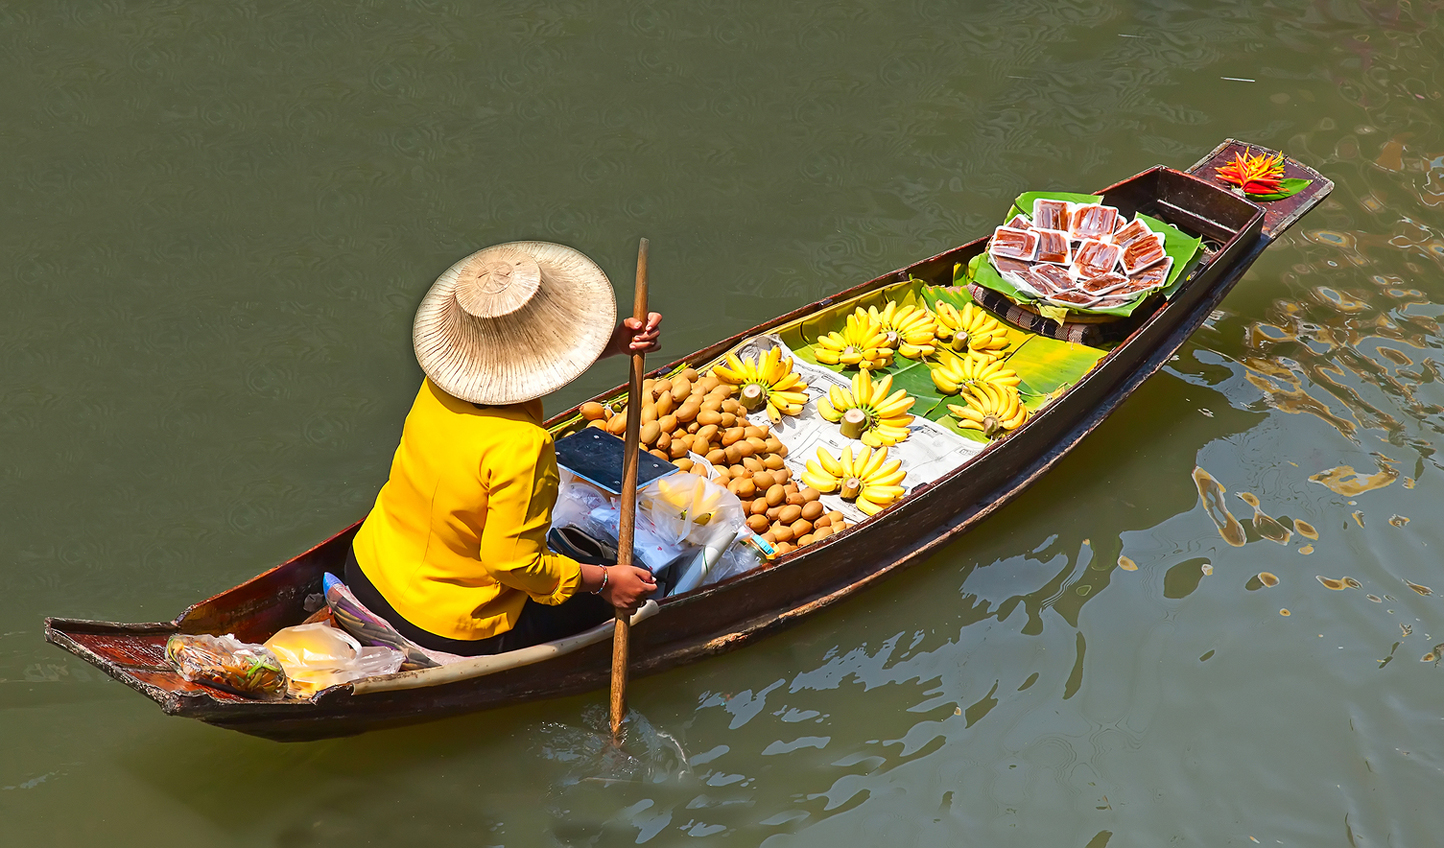 Discover floating markets full of local delicacies